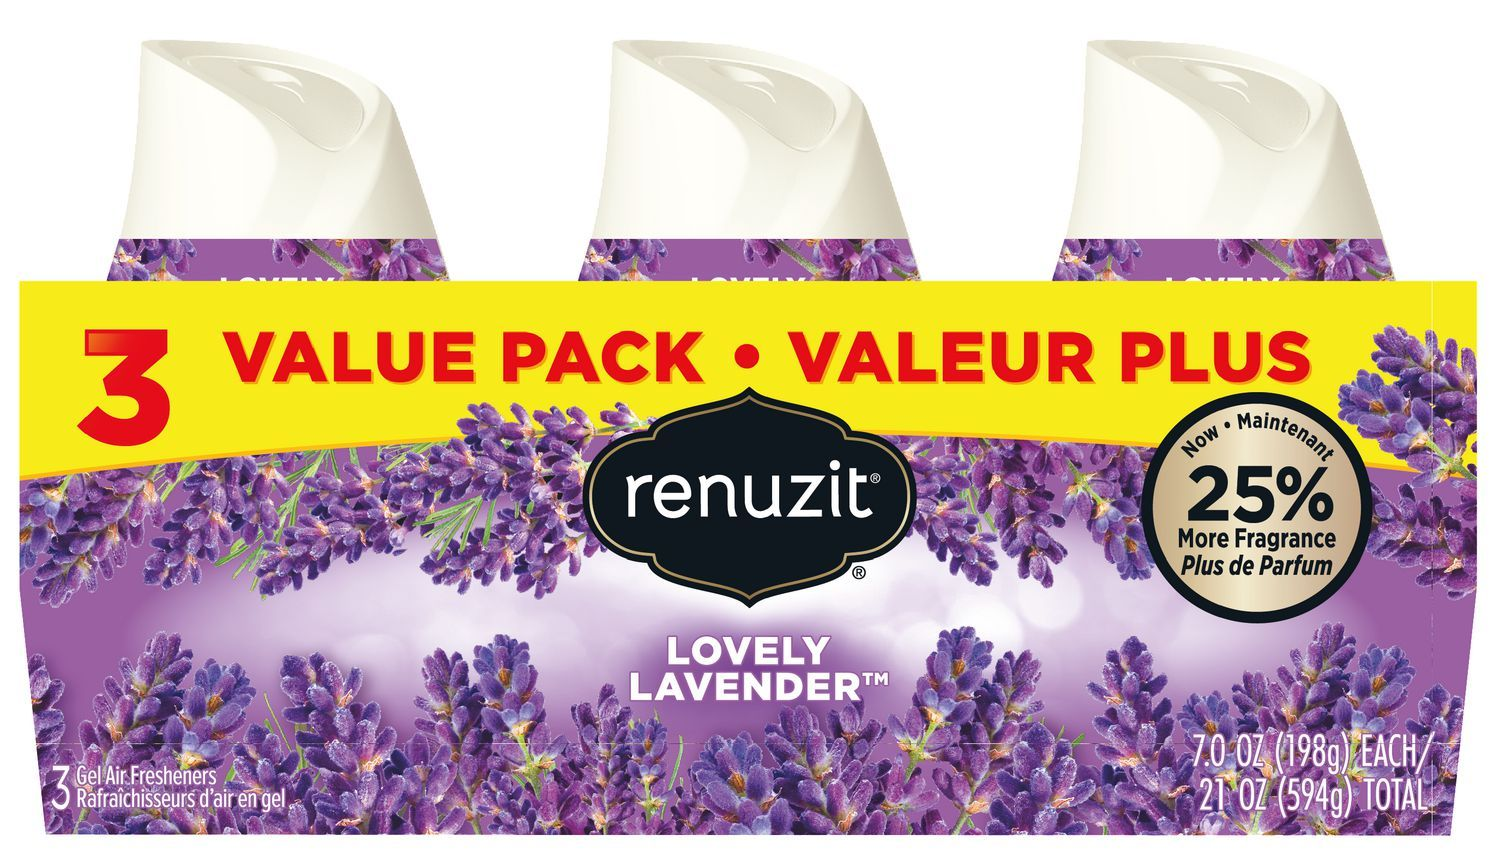 RENUZIT BLISSFUL LOVELY LAVENDER GEL AIR FRESHENER 3 PACK 7 OZ***SHIP TO ORDER BY EVERY SUNDAY ARRIVES THE NEXT WEEK'S TUESDAY FOR DELIVERY***